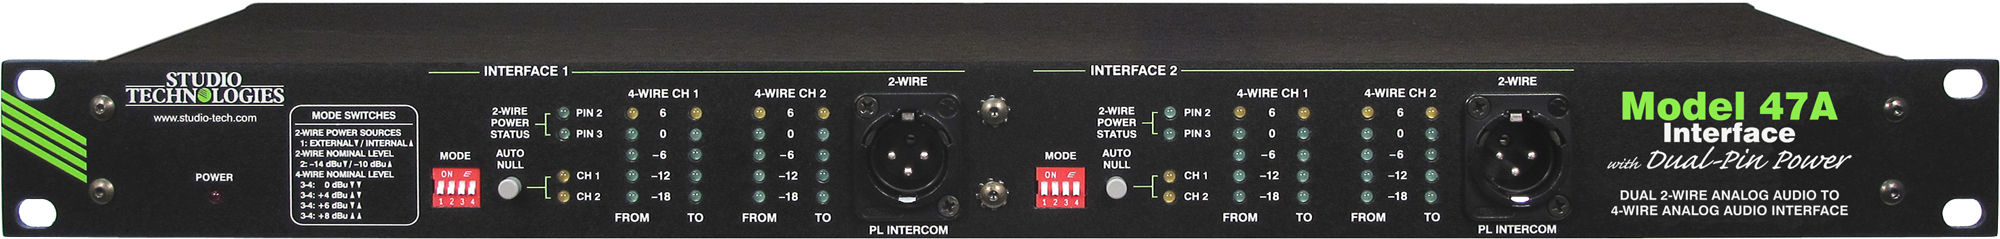 Model 47A Dual 2-Wire og Audio to 4-Wire og Audio Interface ... on grey fox intercom system wiring diagram, intercom wiring diagrams aiphone c-123lw, farfisa intercom receiver diagram, door strike intercom access control diagram,